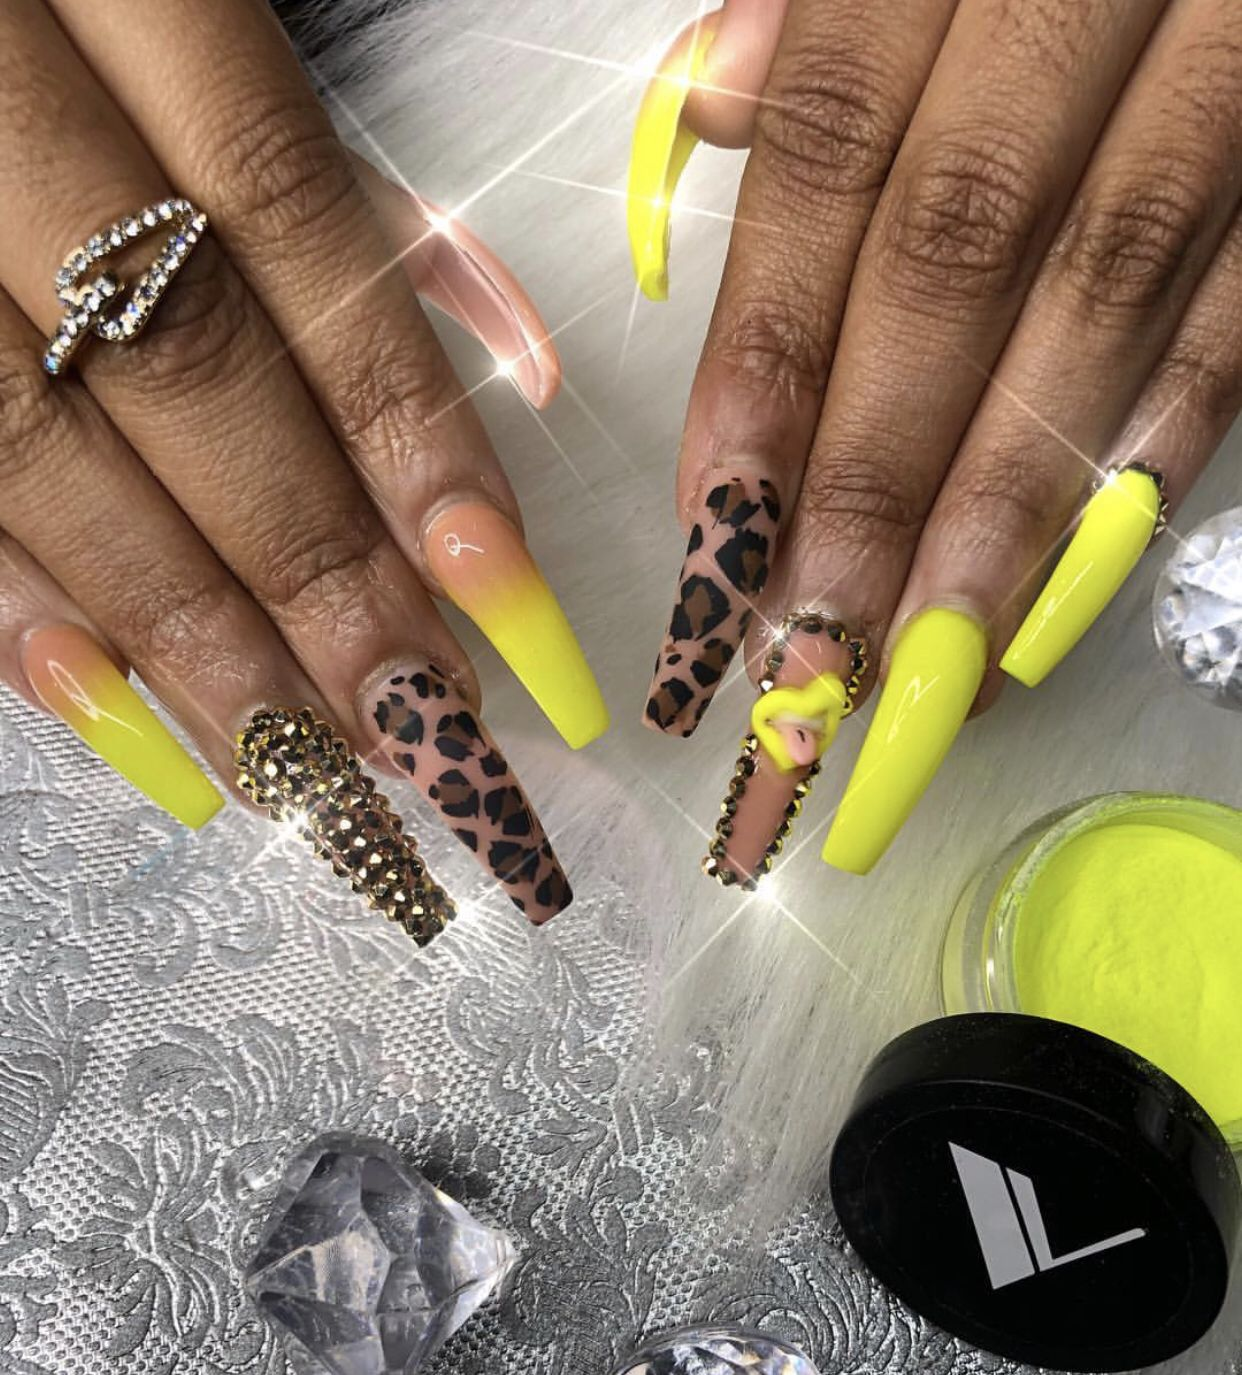 Pinterest Shesoglorious Nails Design With Rhinestones Nail Designs Long Acrylic Nails